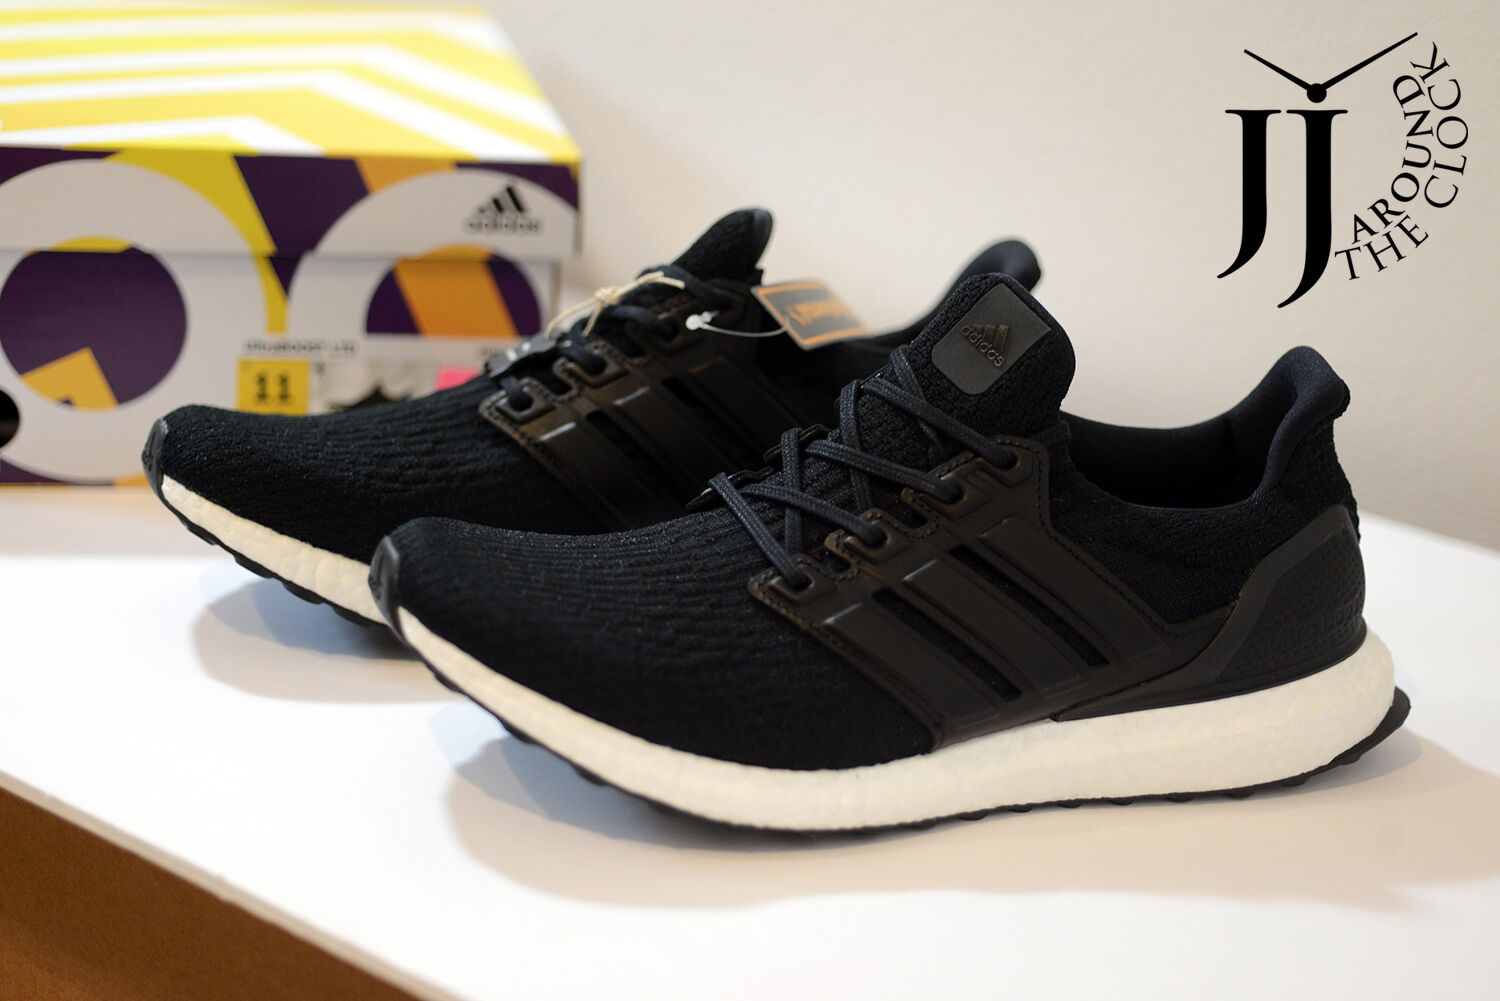 New Adidas Men's UltraBoost 3.0 LTD Core Black Leather Cage Pack  BA8924 11 US